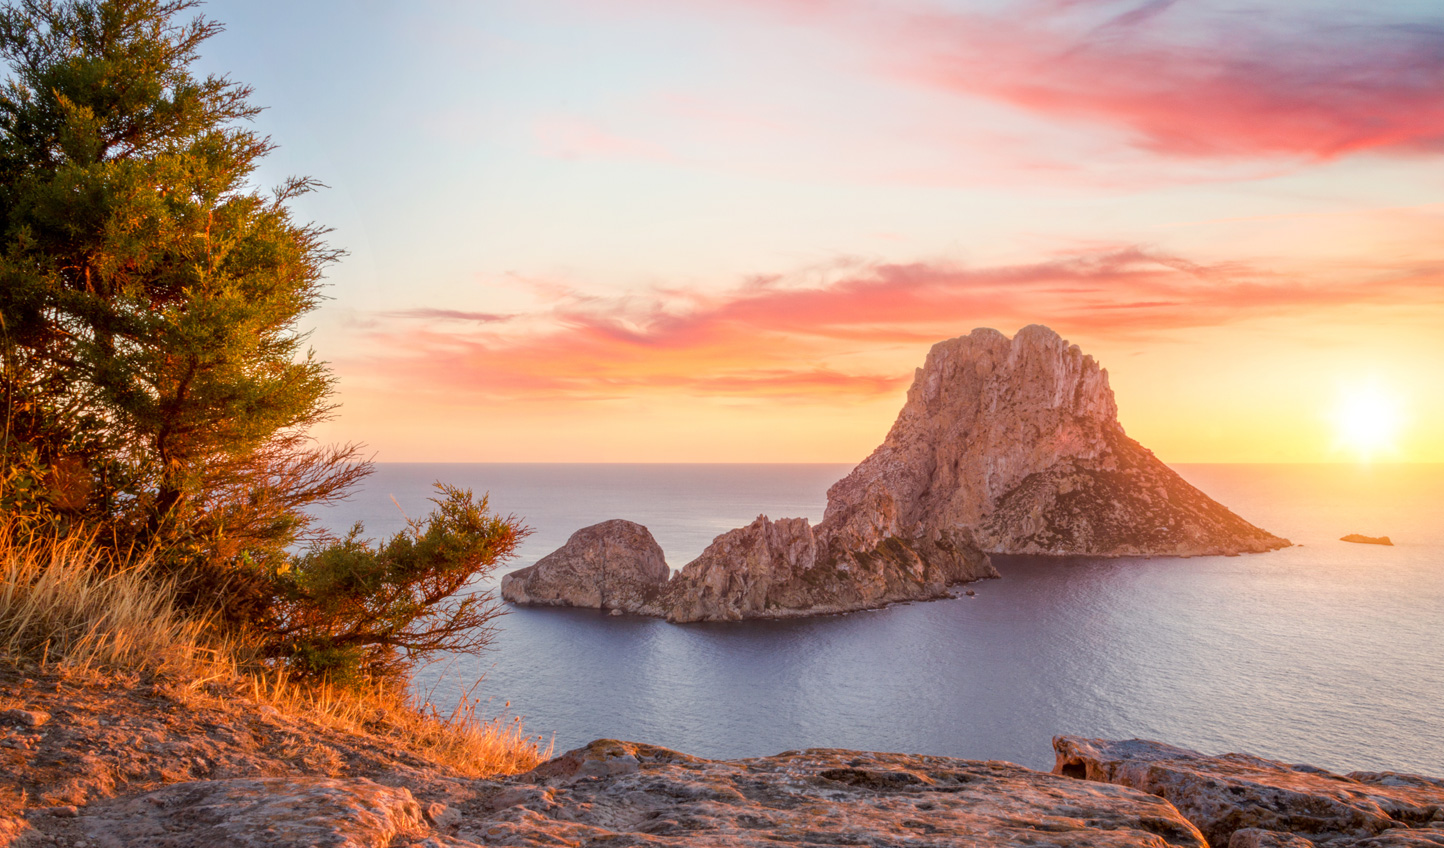 Watch in wonder as the sunset casts a ethereal glow over Es Vedra